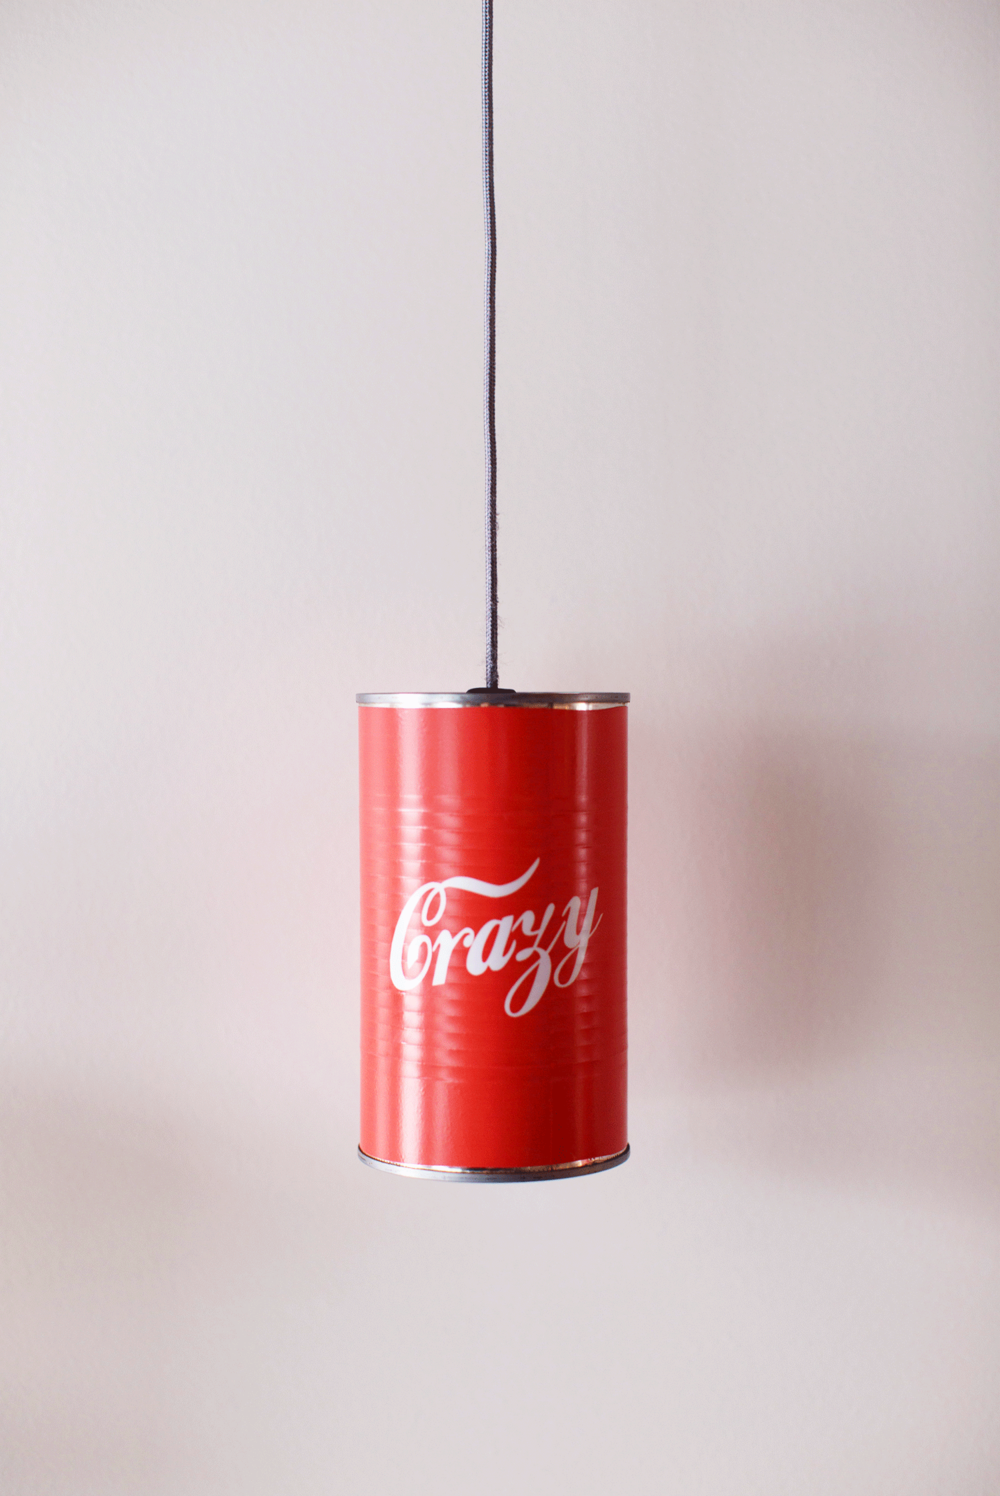 CALL-Tins-Cans2.png